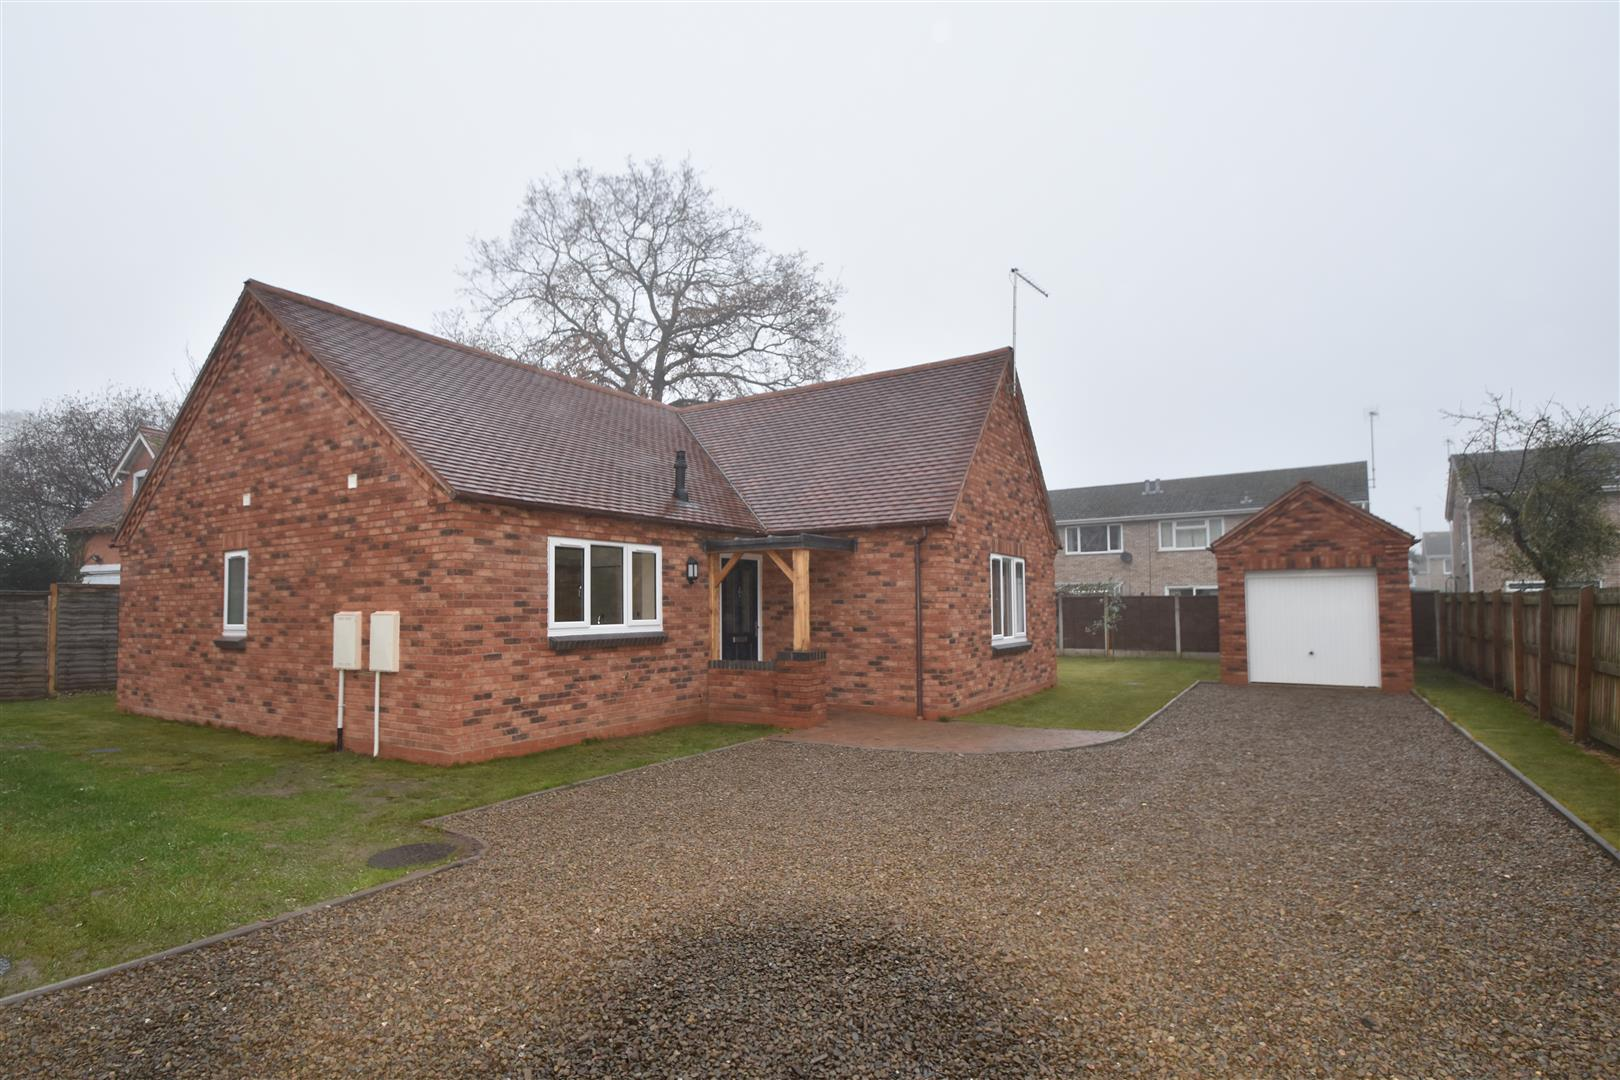 3 Bedrooms Detached Bungalow for sale in Droitwich Road, Fernhill Heath, Worcester